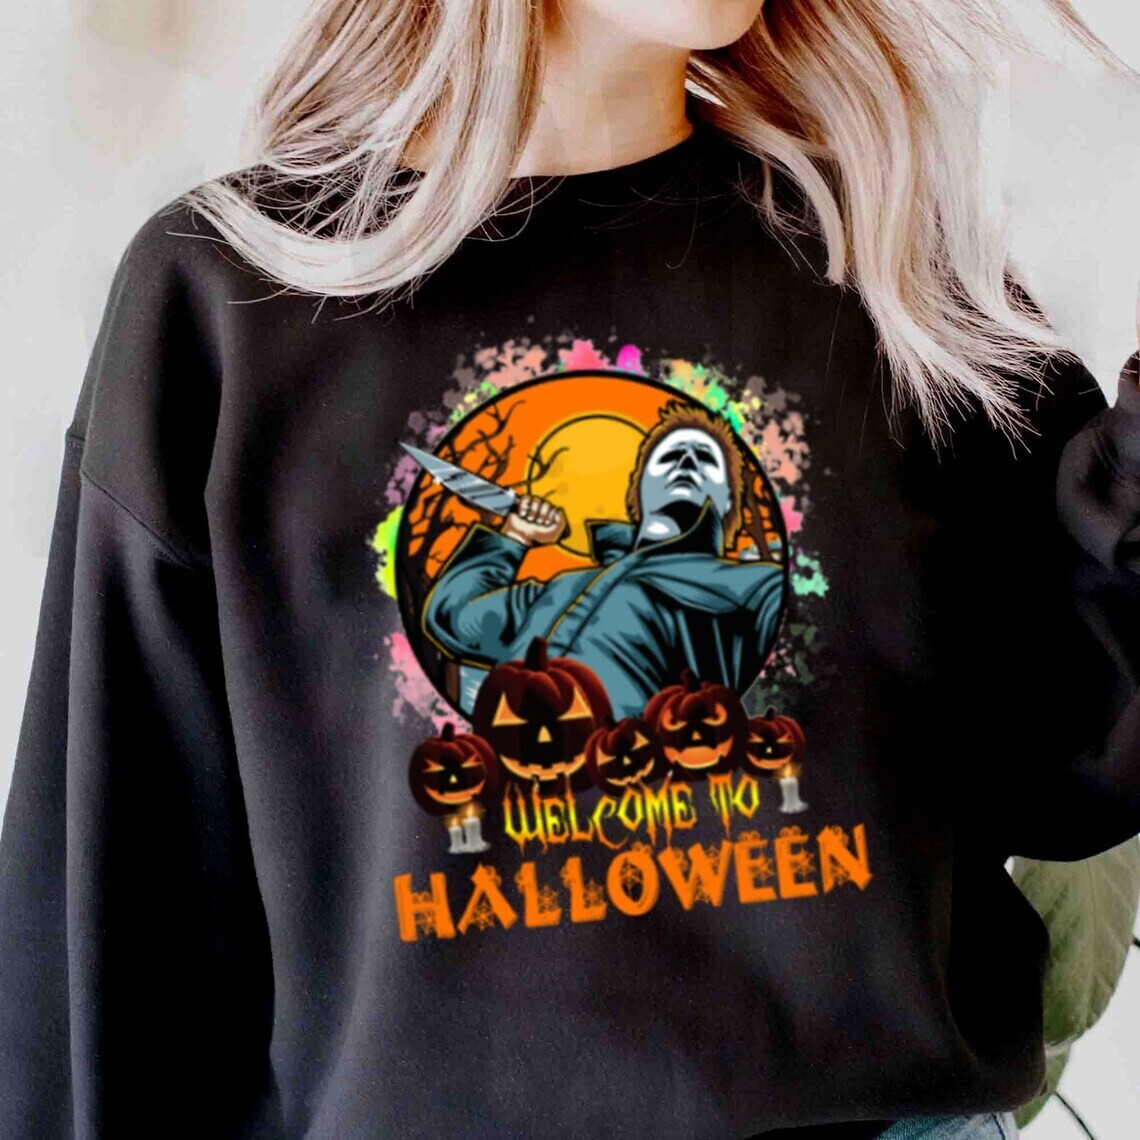 Halloween Michael Myers Bleached Shirt, Michael Myers A Real Man Will Chase After You Shirt,Horror Friend, Halloween Squad, Halloween Costume Shirt Long Sleeve Sweatshirt Hoodie Jolly Family Gift